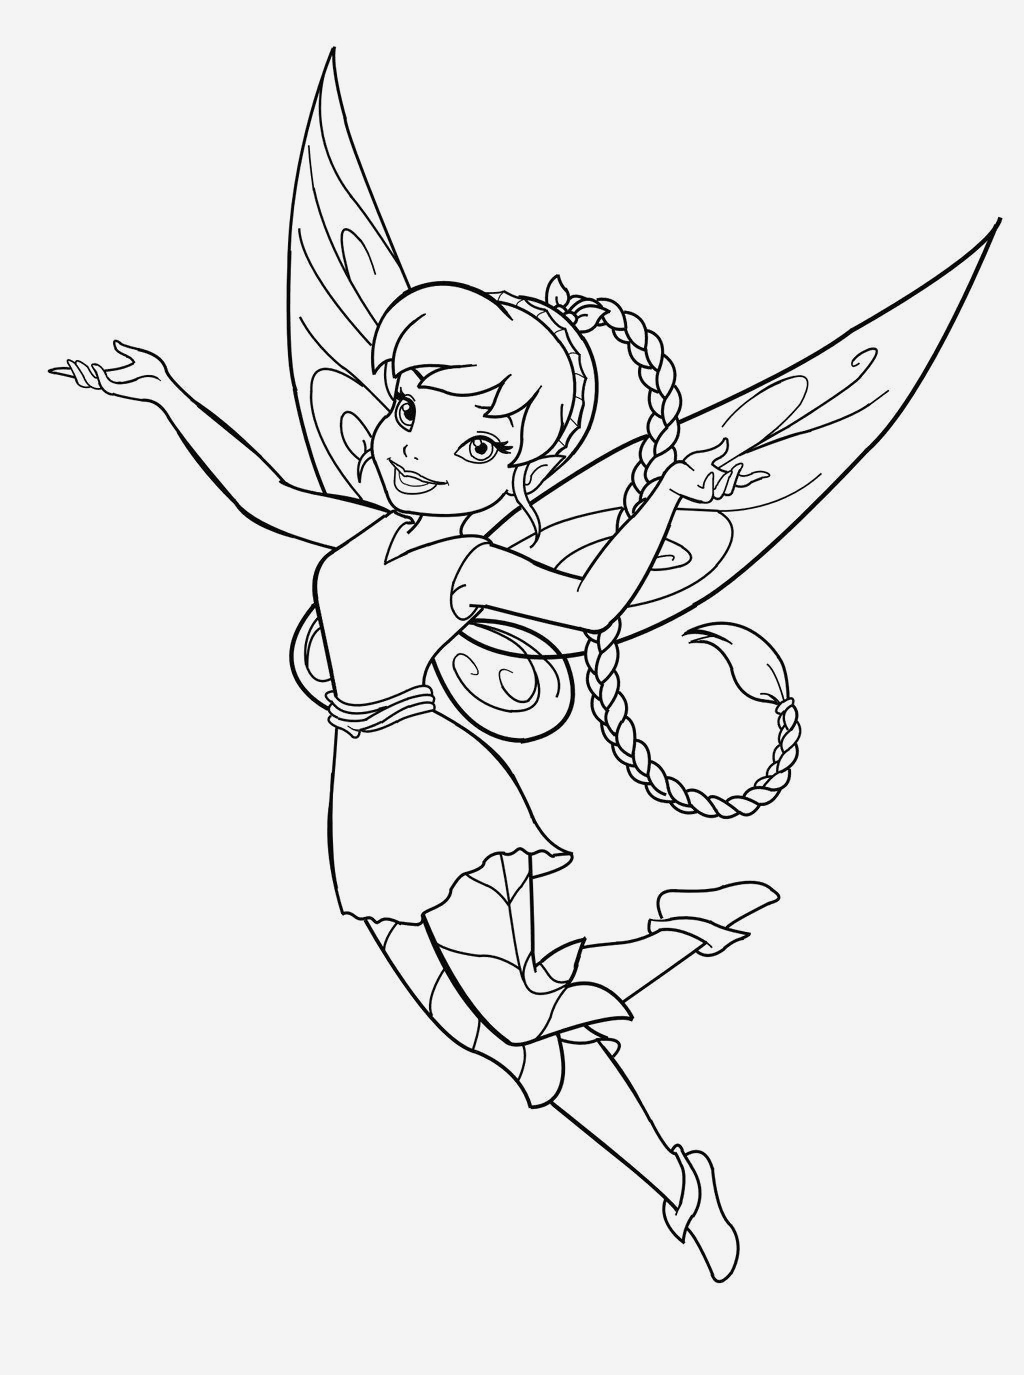 Coloriage Fée Clochette Beautiful Free Printable Fairy Coloring Pages for Kids Of Coloriage Fée Clochette